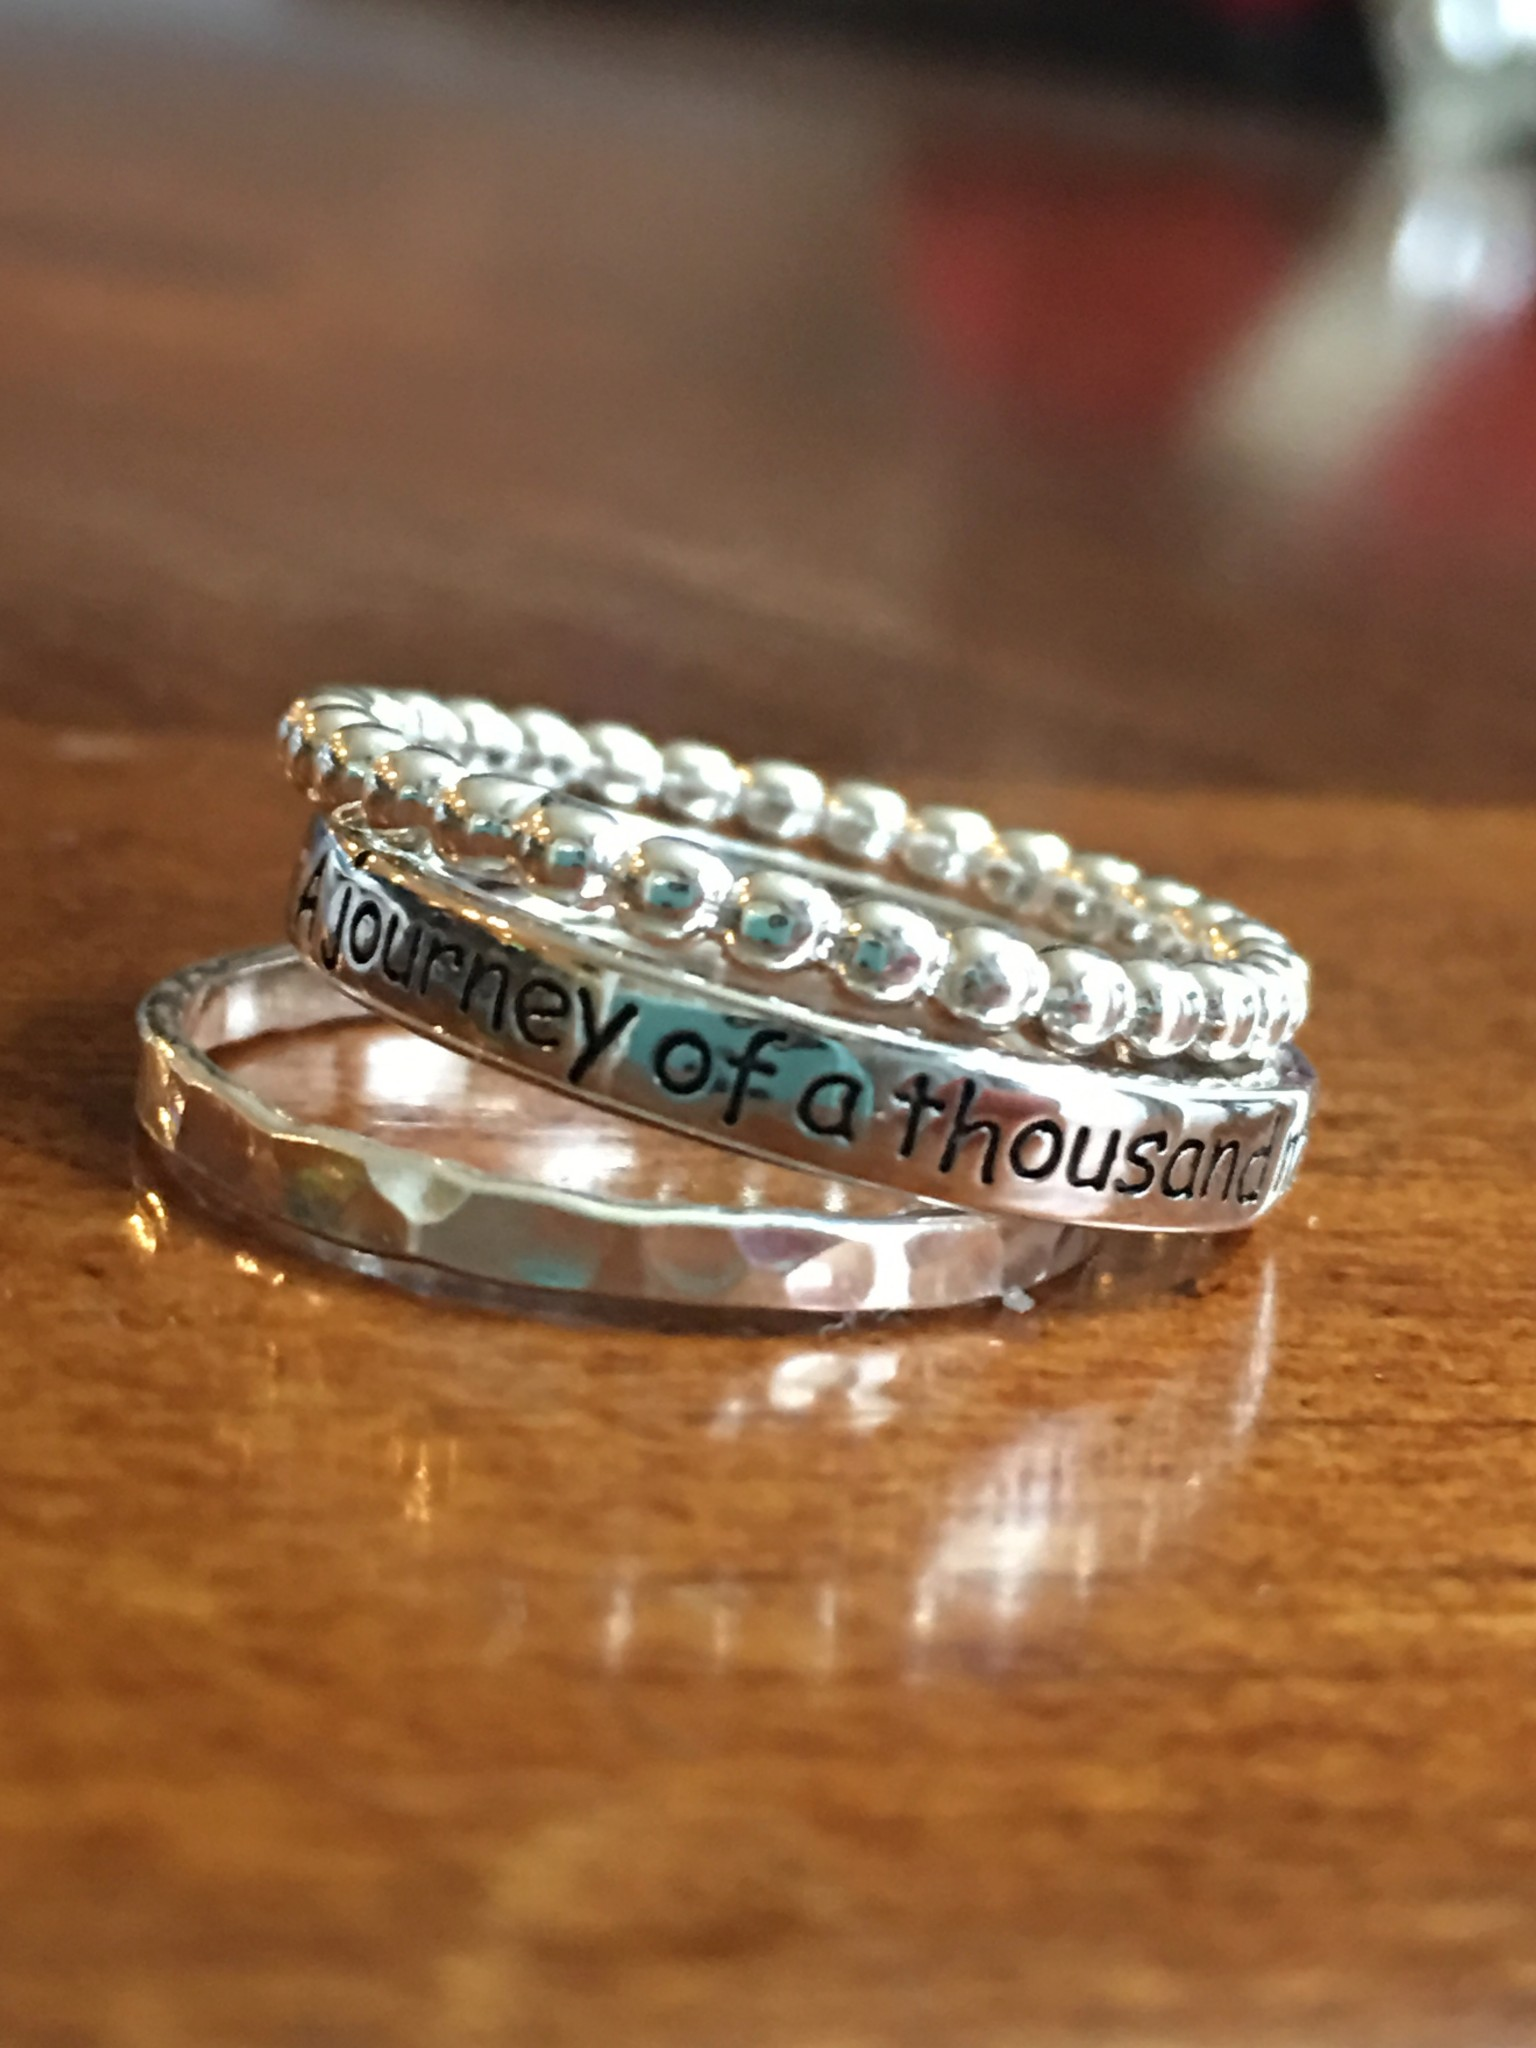 Journey of a thousand miles stacking ring set